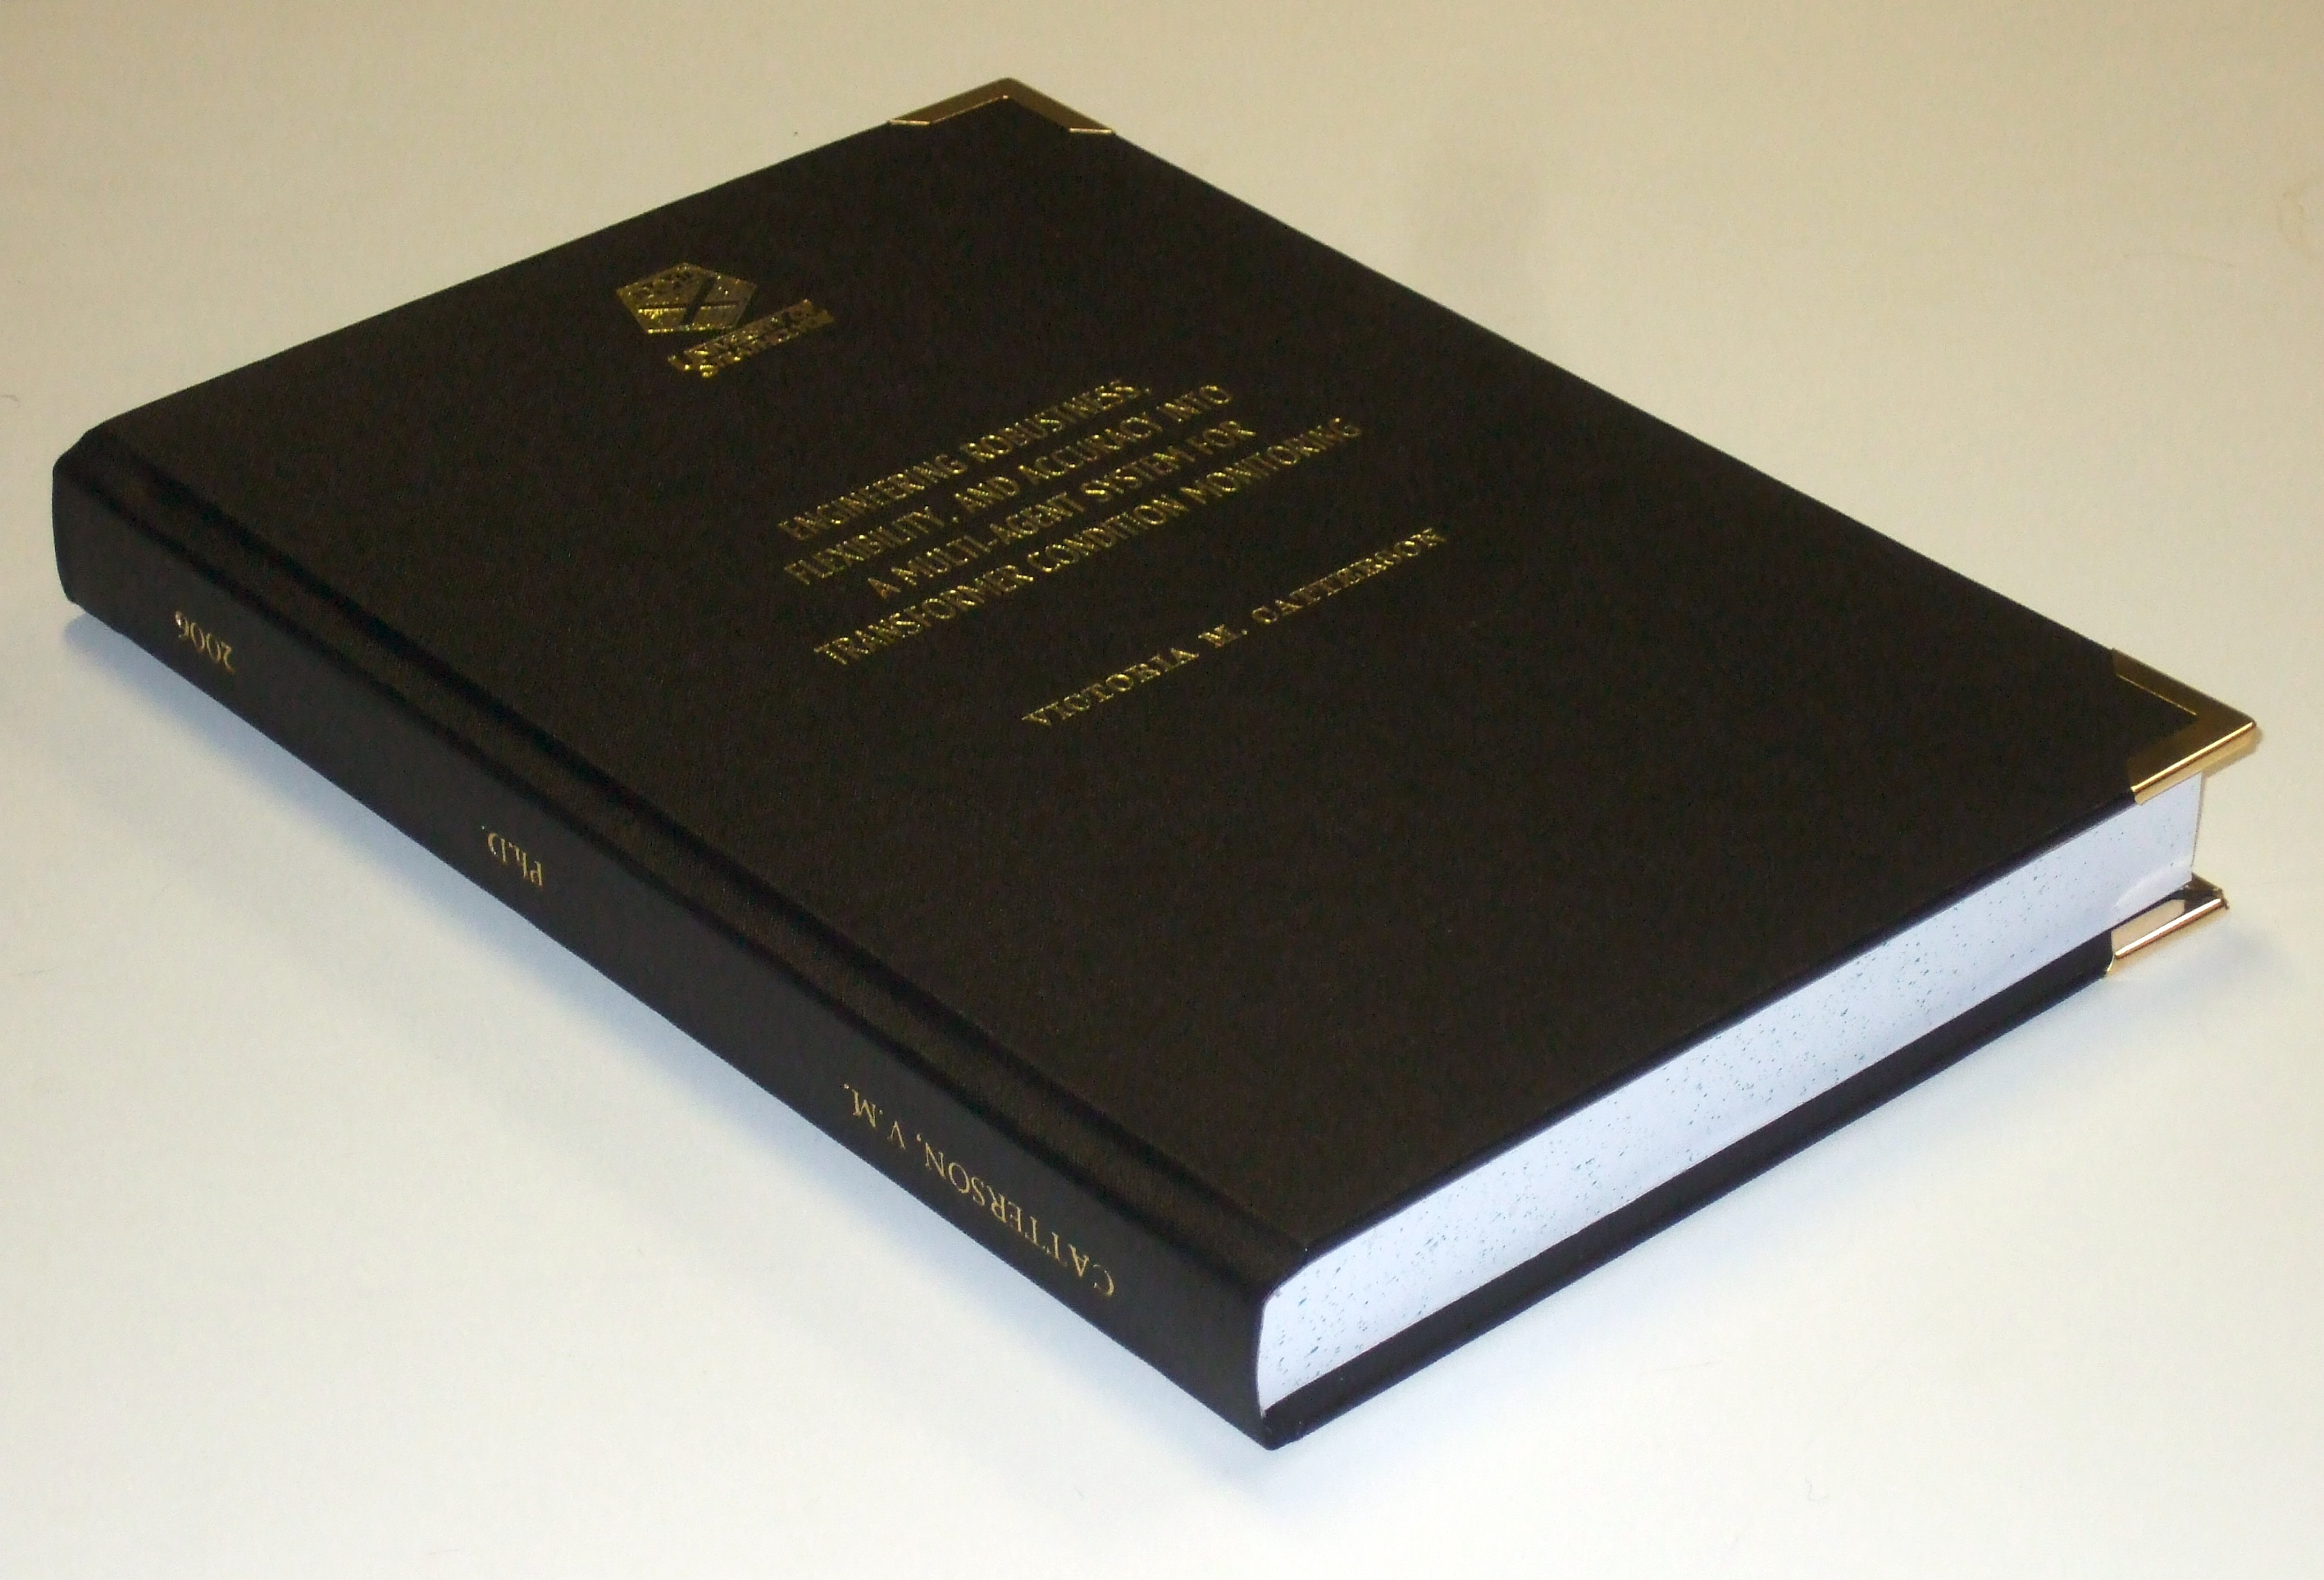 phd thesis binding sydney We provide quality printing and binding services for university thesis, family  history book, wedding album, journal or magazine.